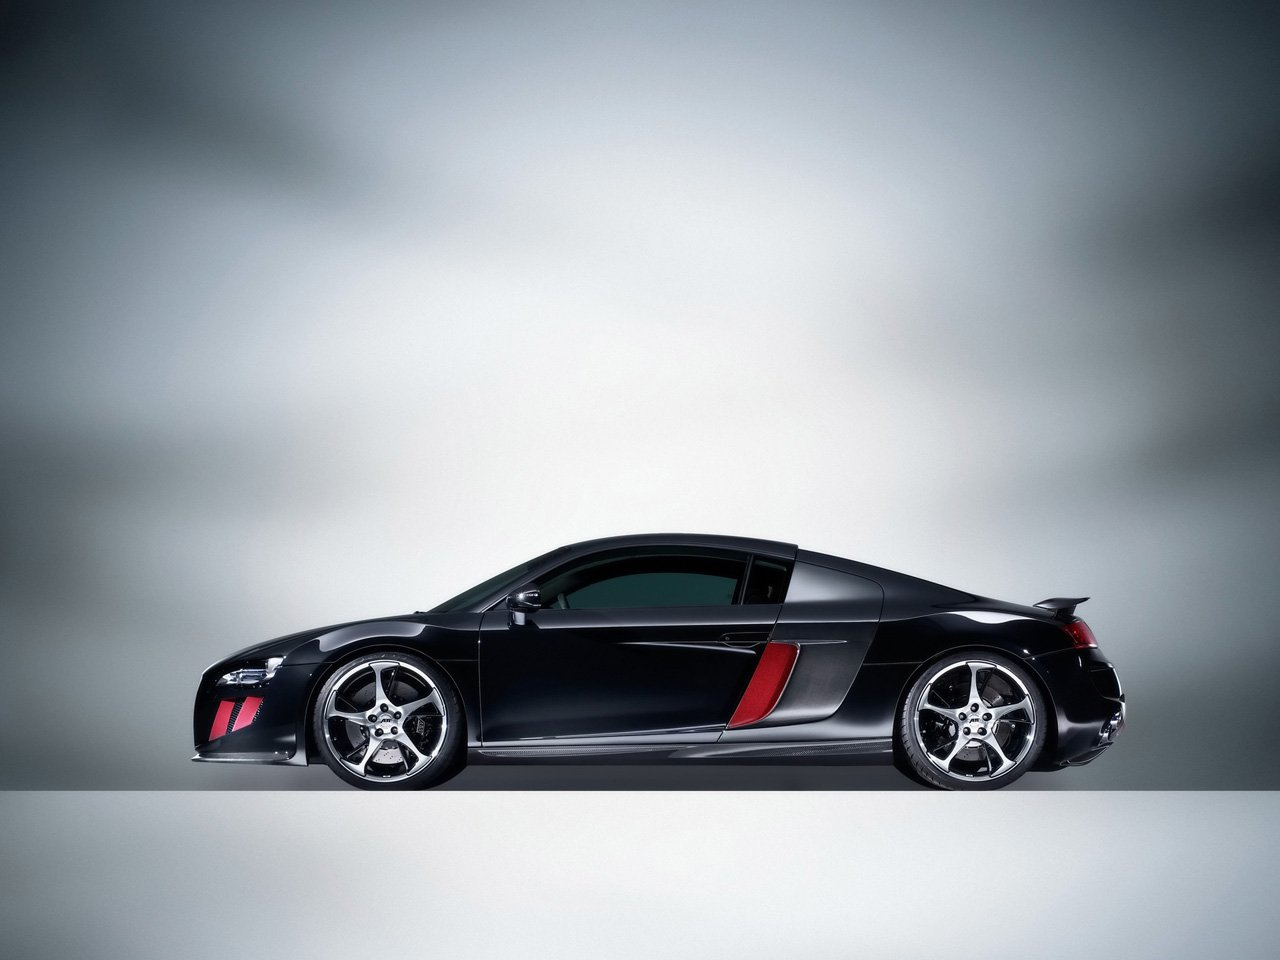 Latest 2008 Abt Audi R8 Wallpapers Auto Cars Concept Free Download